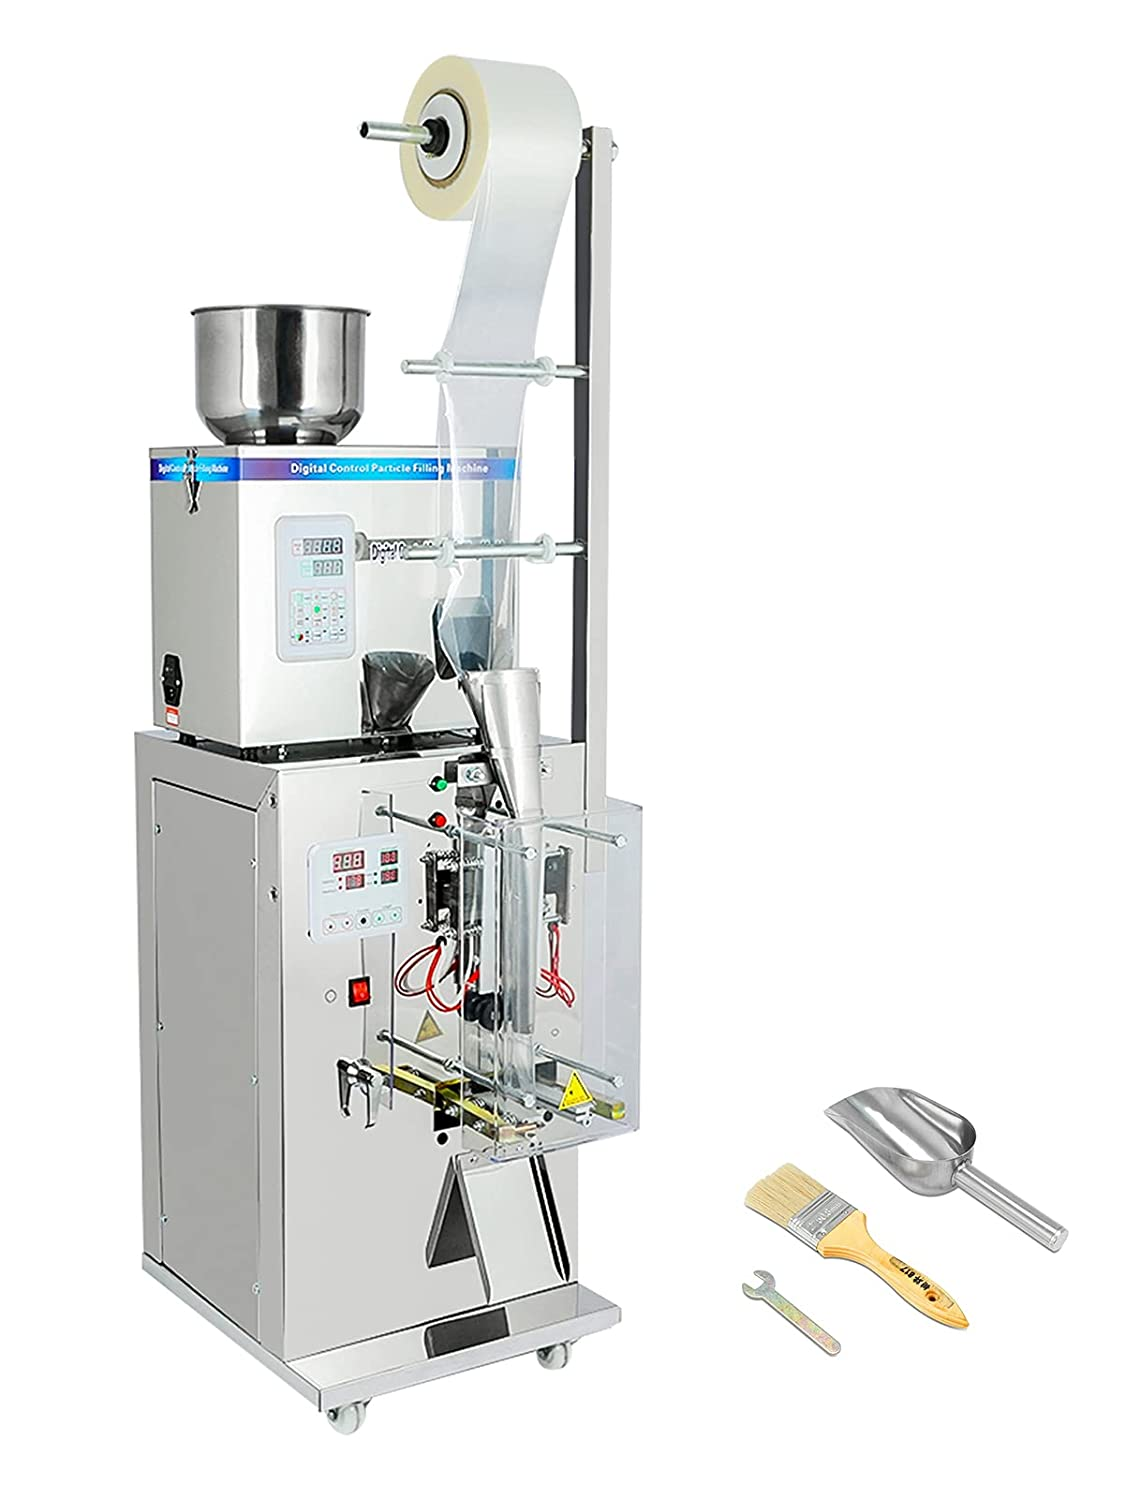 Finally resale start 110V outlet 500W Automatic Particles Powder Filling Pack and Weighing